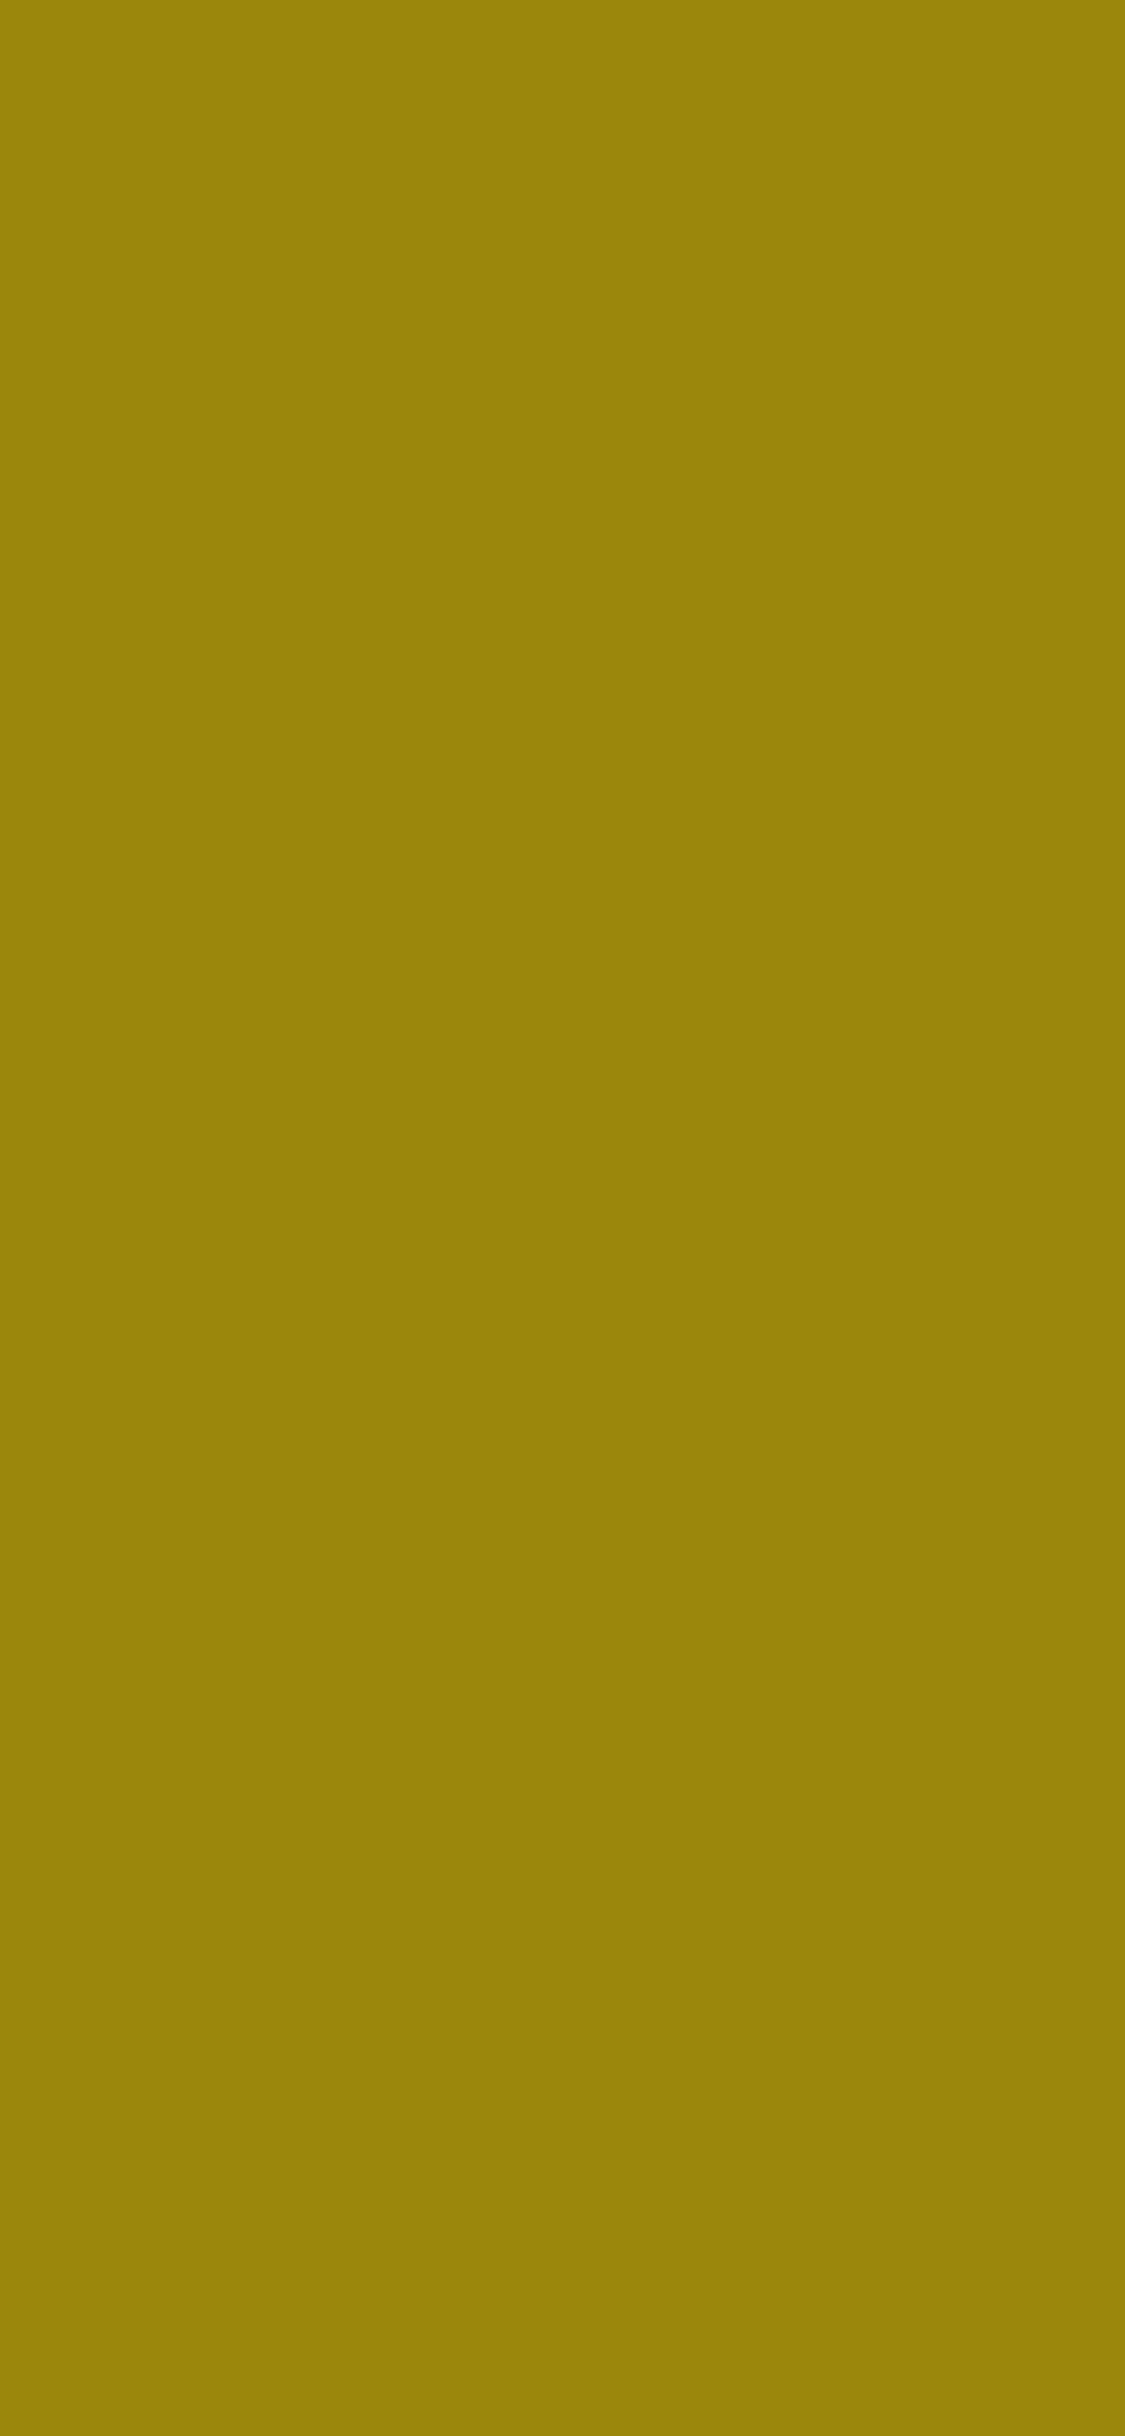 1125x2436 Dark Yellow Solid Color Background